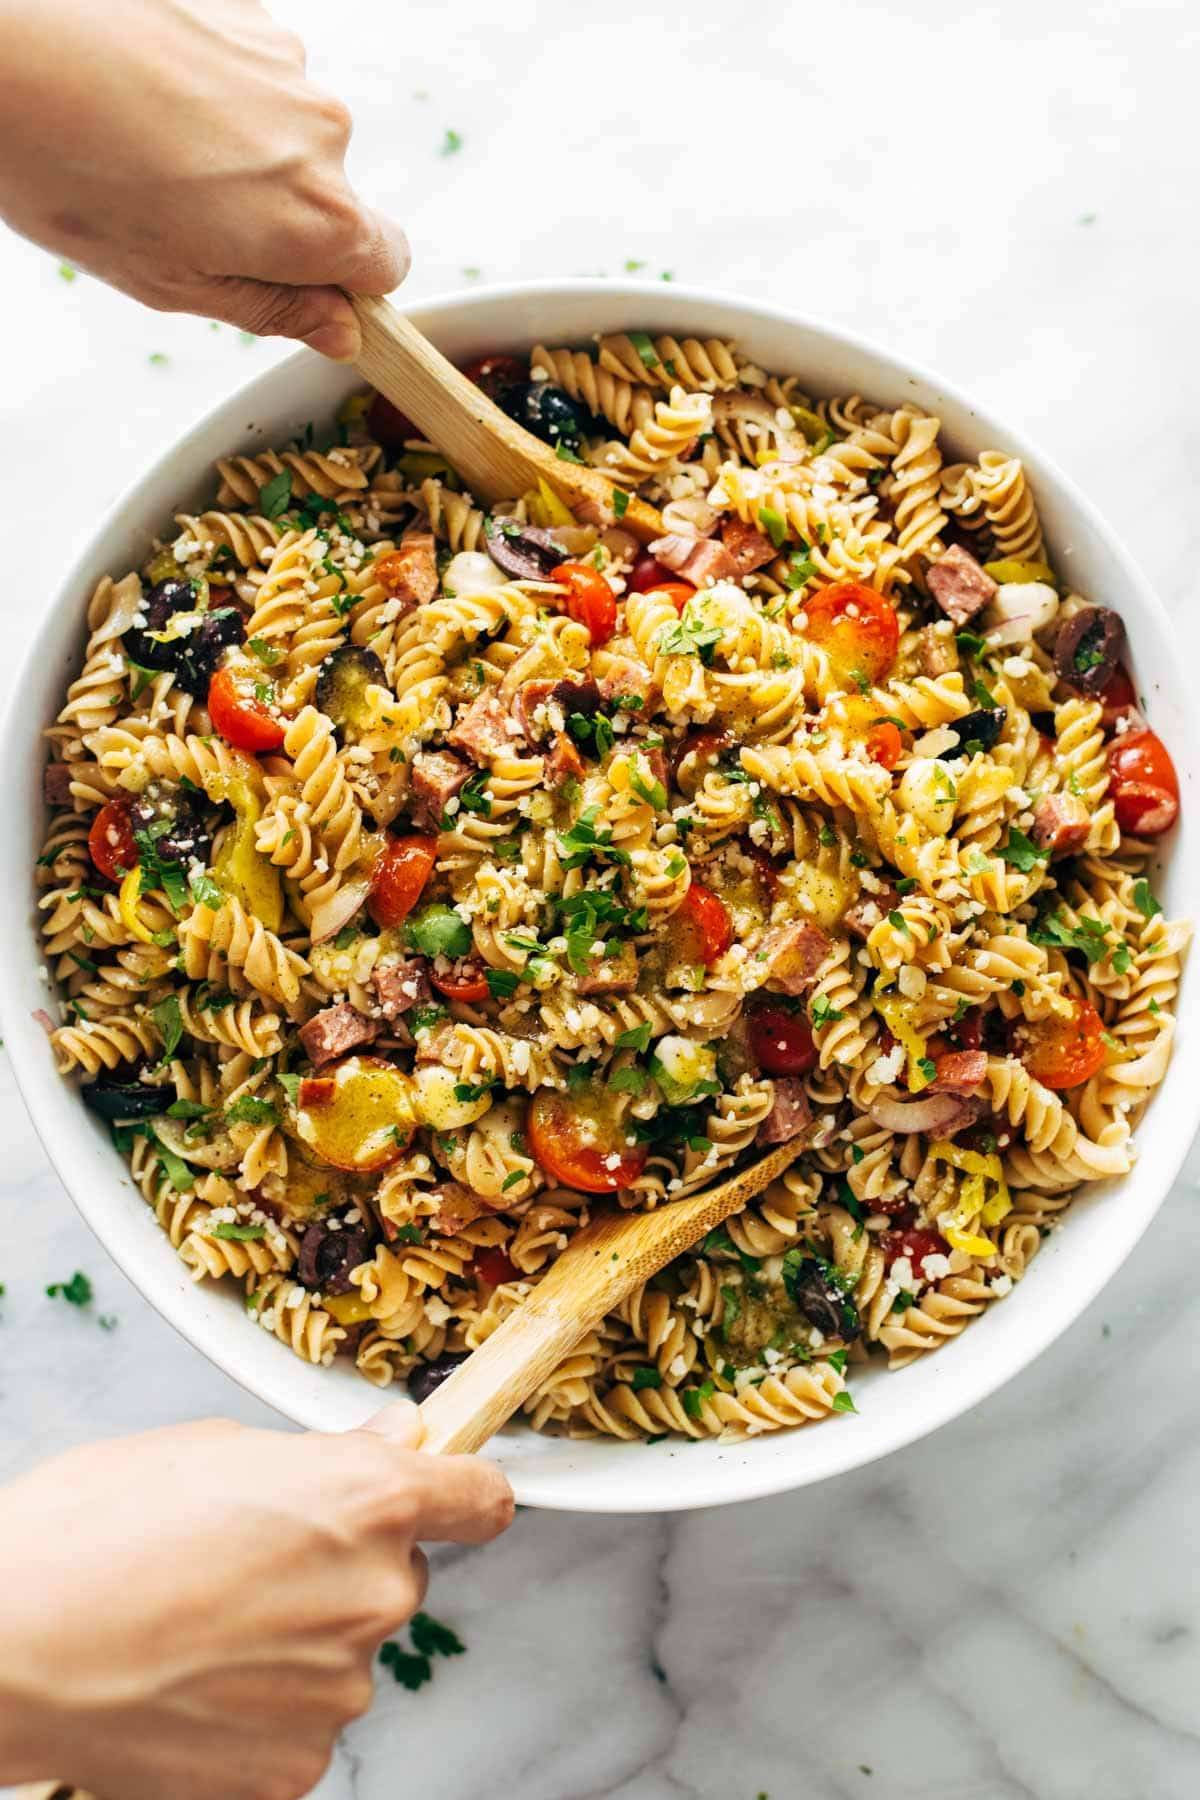 Pasta salad being mixed with spoons.